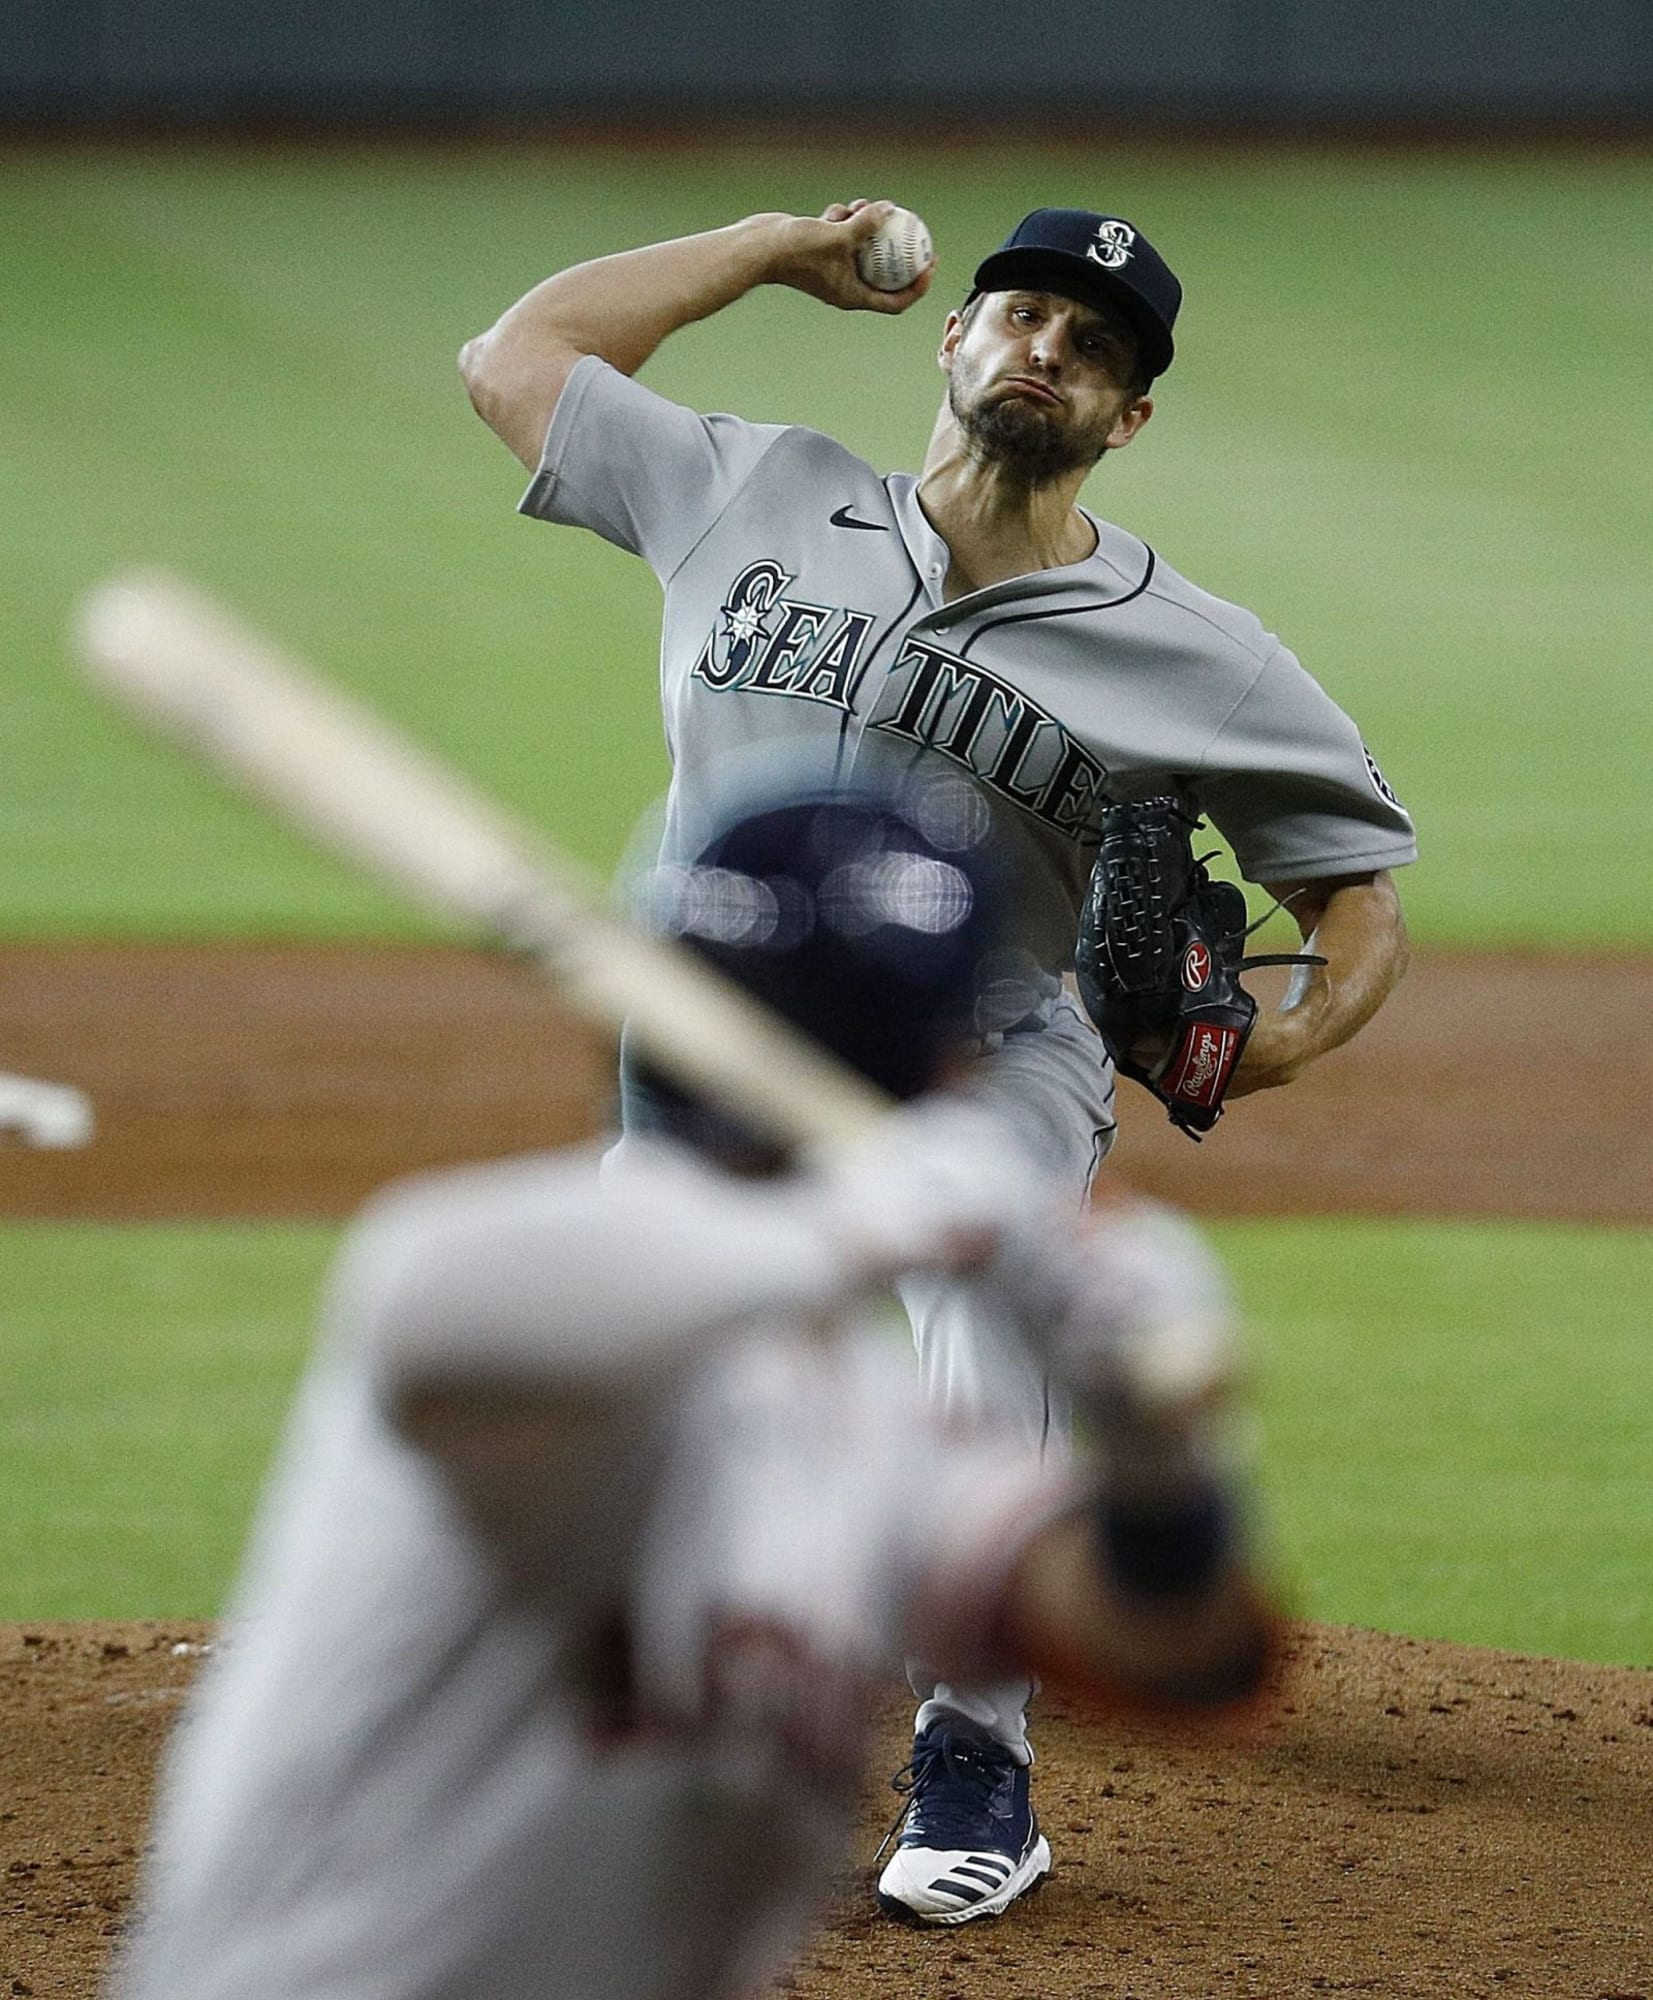 Should the Seattle Mariners replicate the Tampa Bay Rays bullpen?